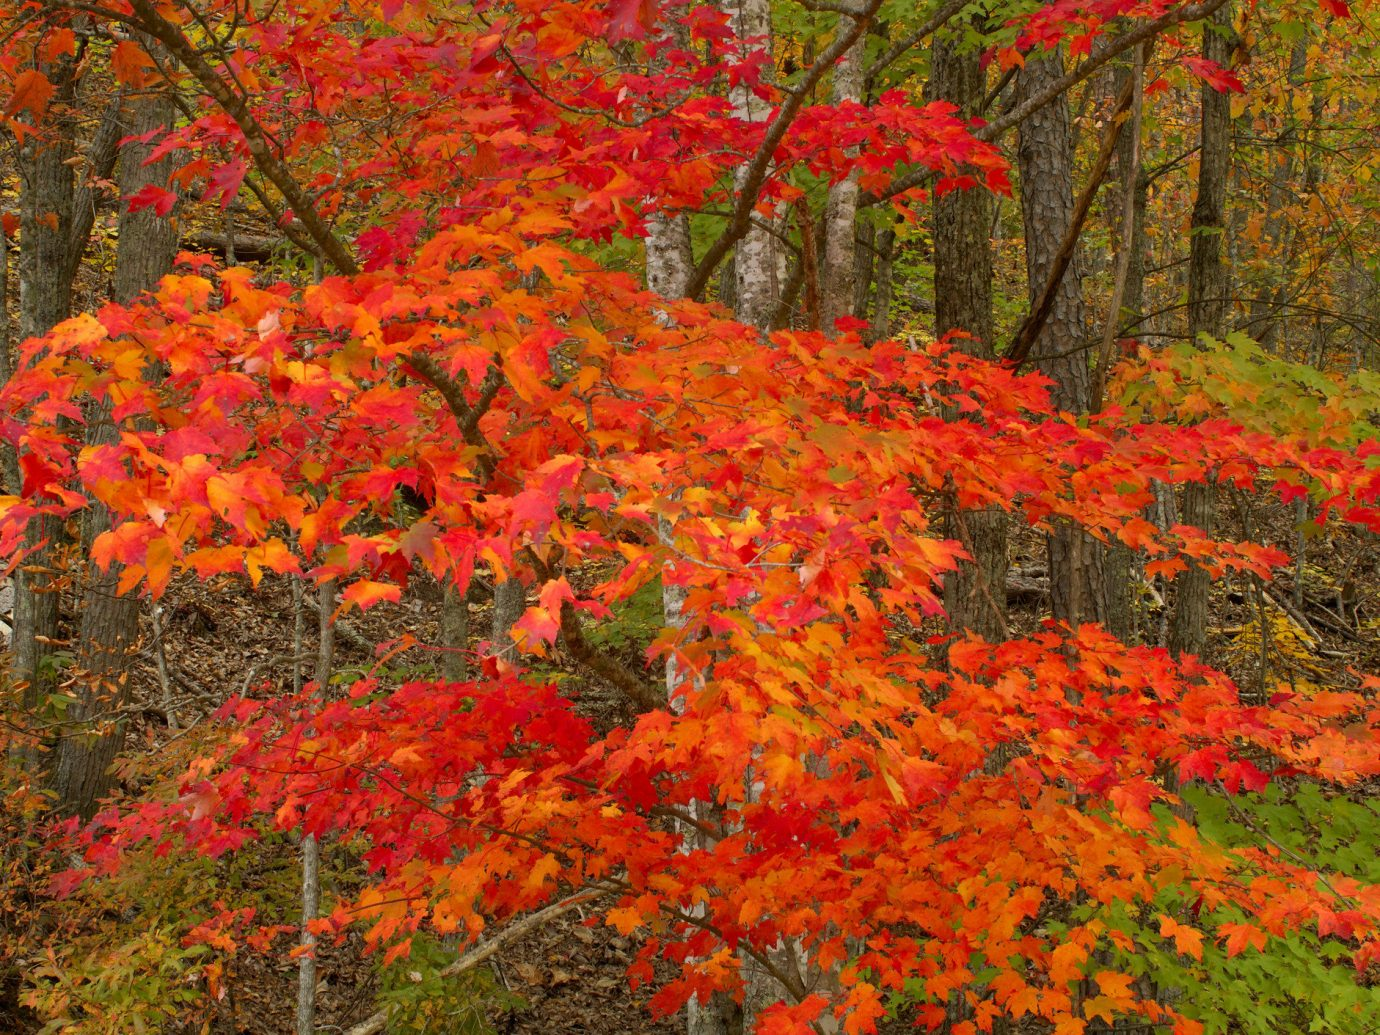 Outdoors + Adventure Road Trips Trip Ideas tree grass plant autumn vegetation leaf woody plant deciduous flora maple leaf flower maple tree temperate broadleaf and mixed forest shrub spring wildflower orange poppy branch woodland landscape flowering plant rhododendron colorful Forest maple colored lush